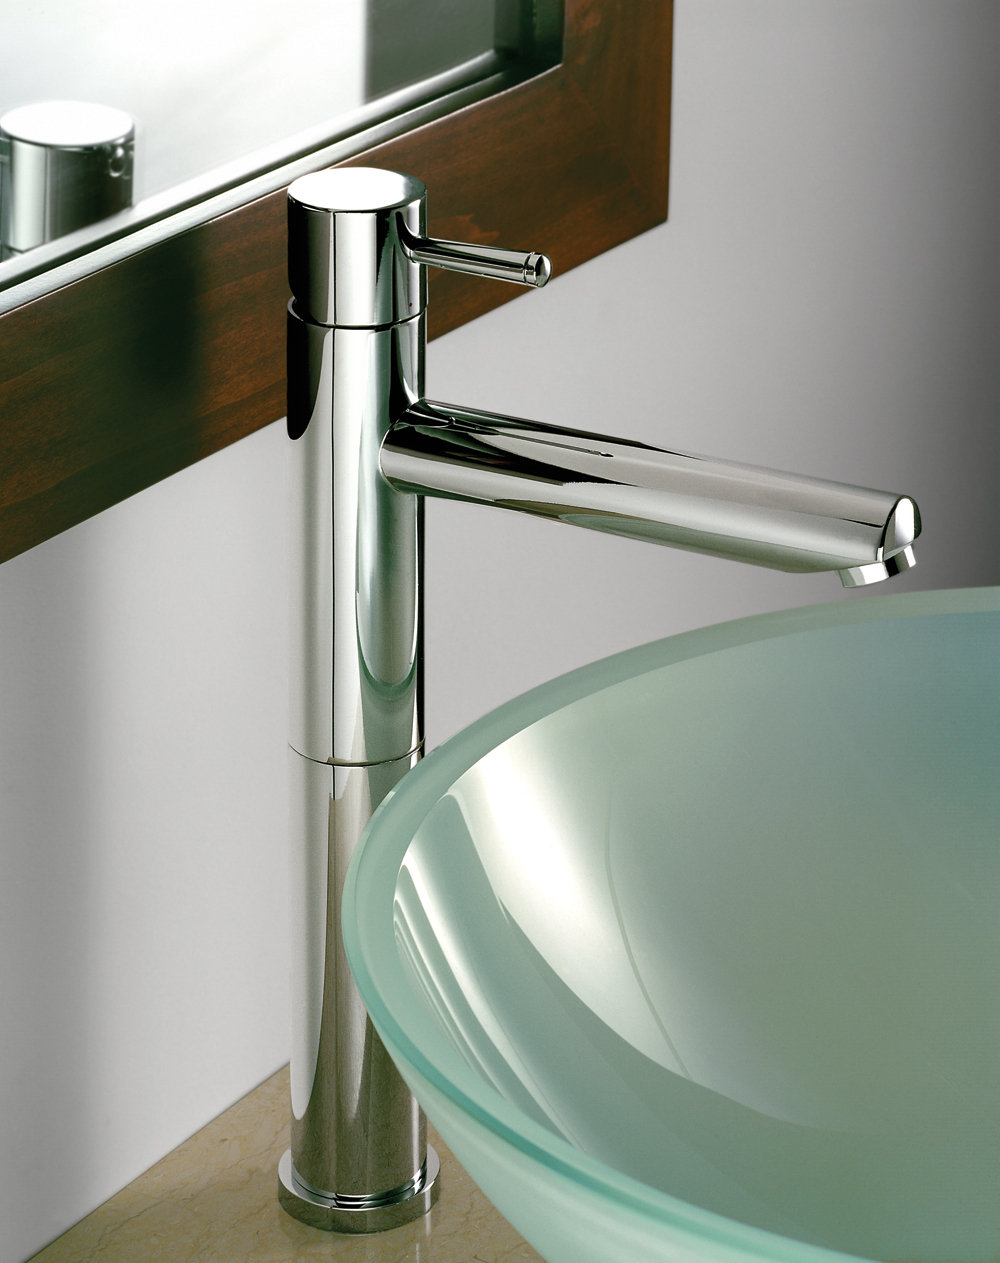 Less Really Is More With The American Standard Serin Faucet